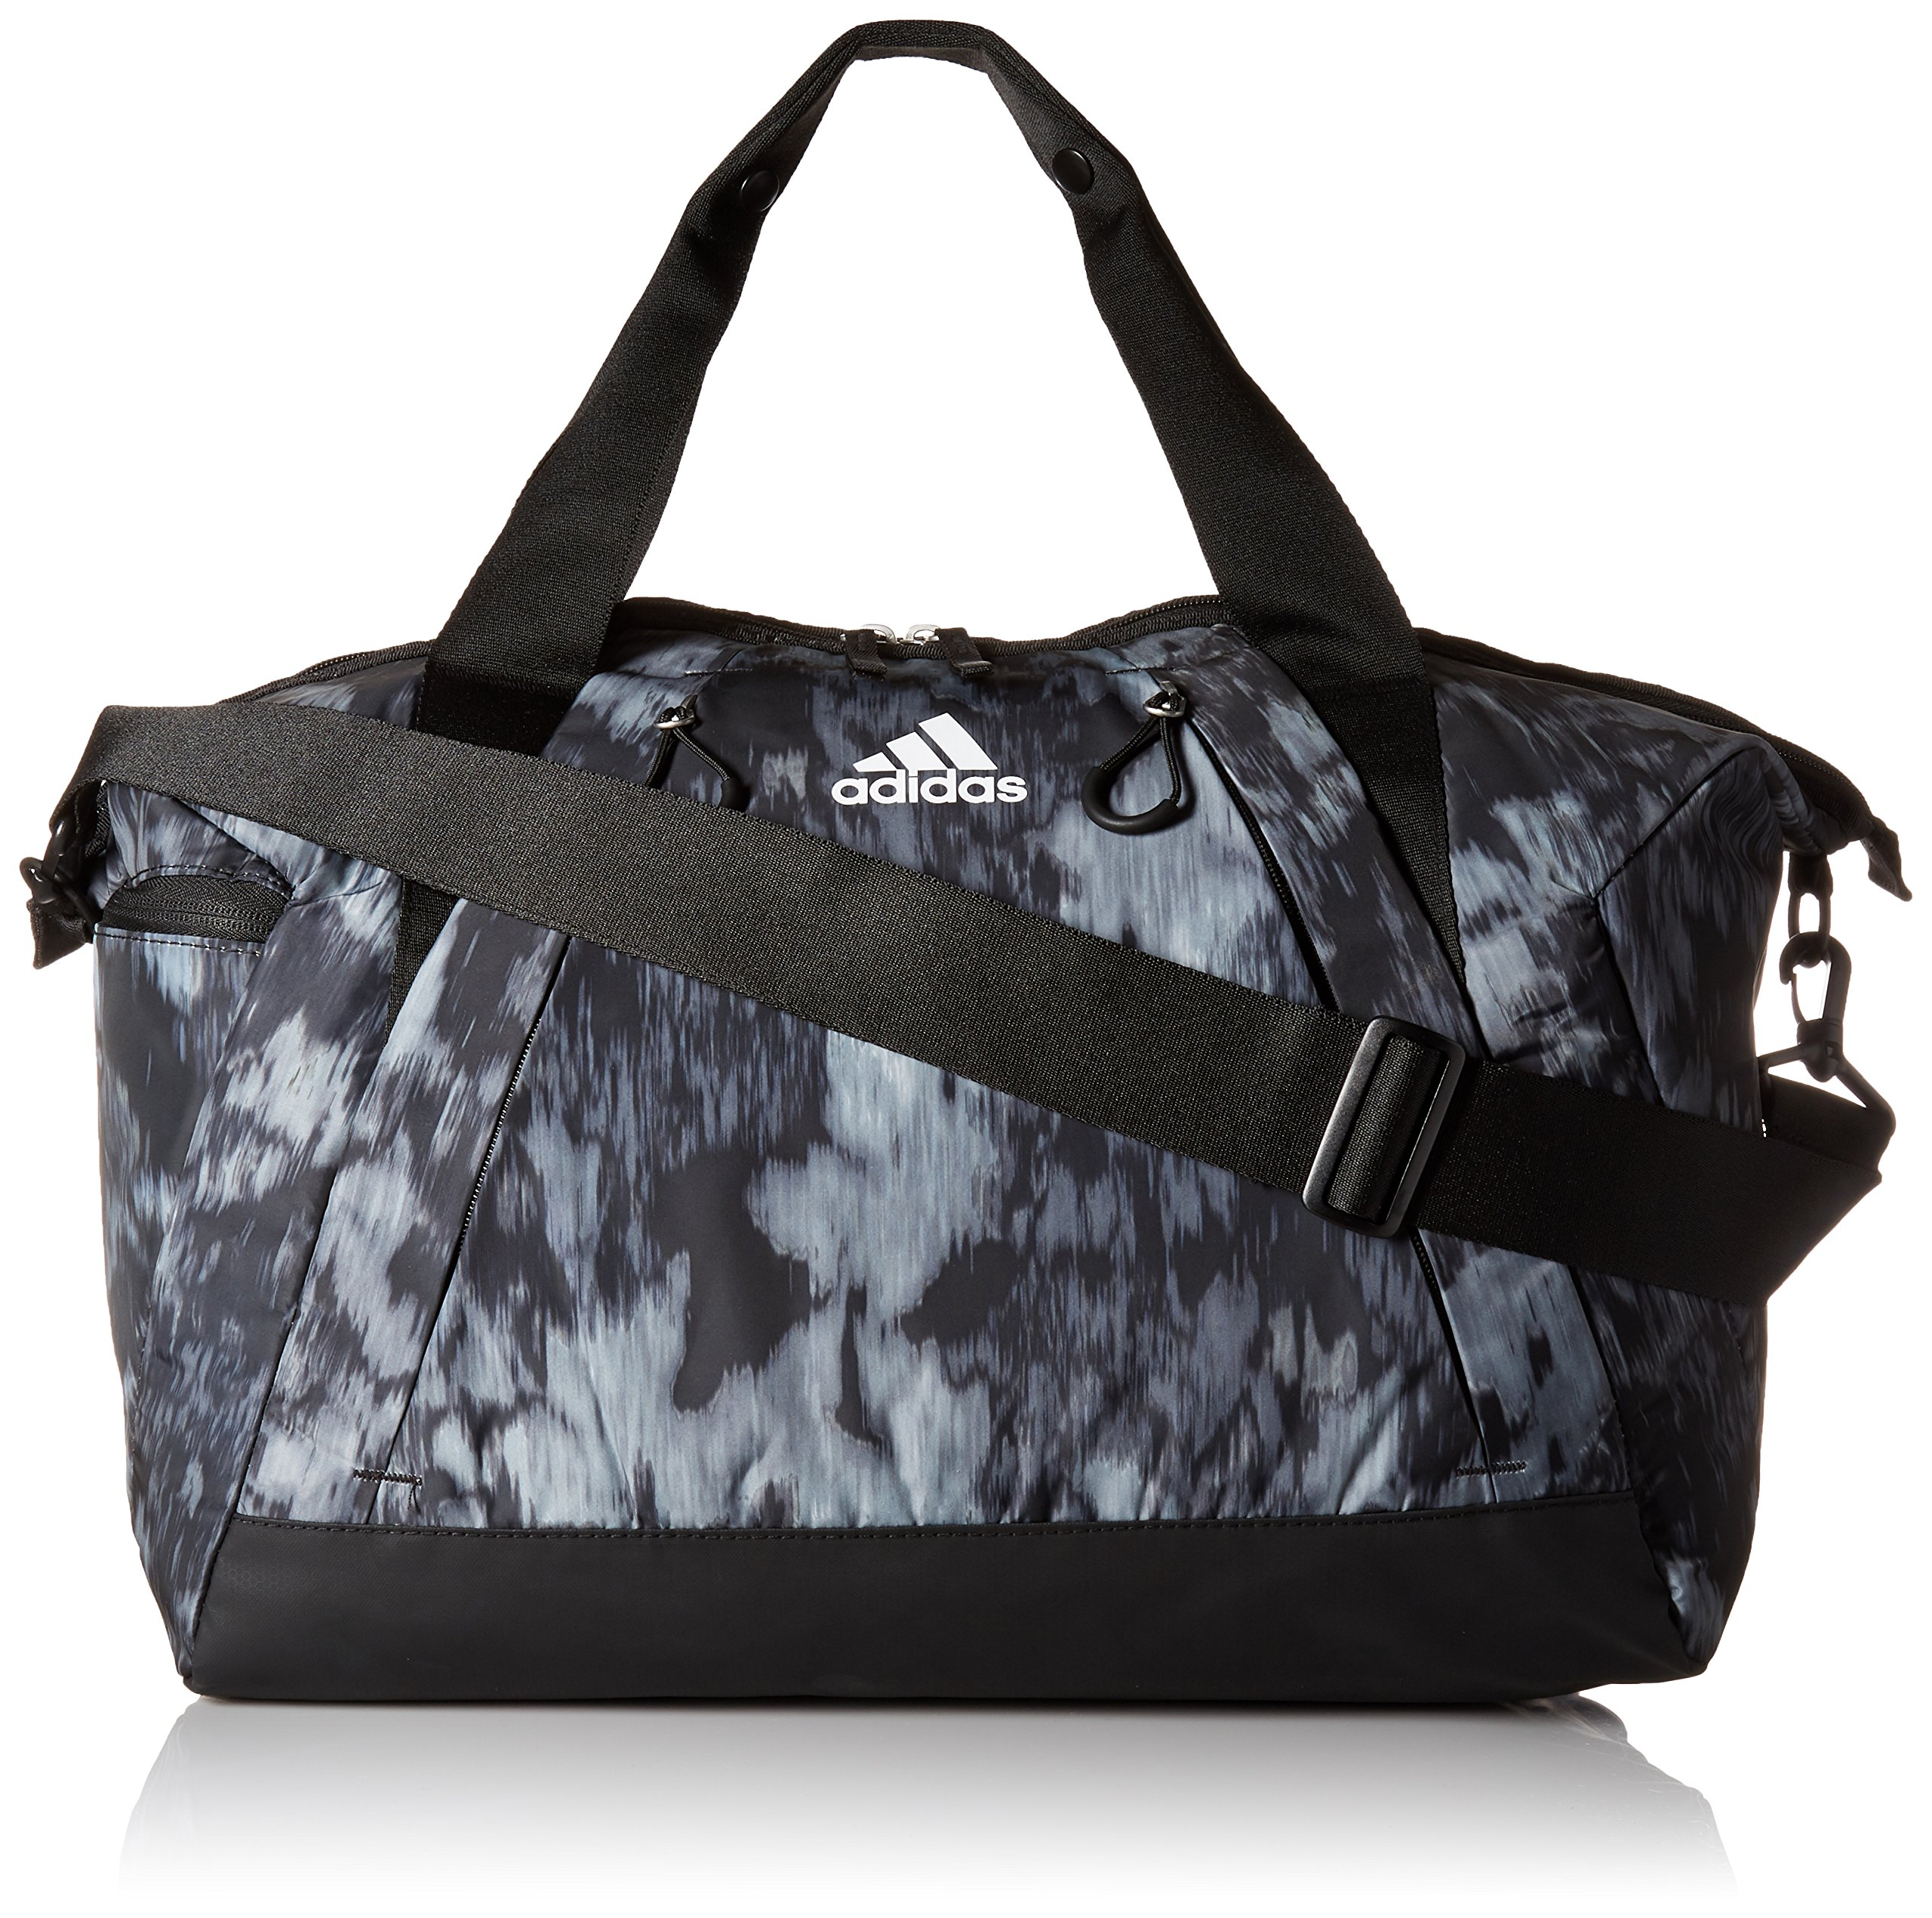 ee5d20f67cb0 Best Rated in Gym Bags   Helpful Customer Reviews - Amazon.com